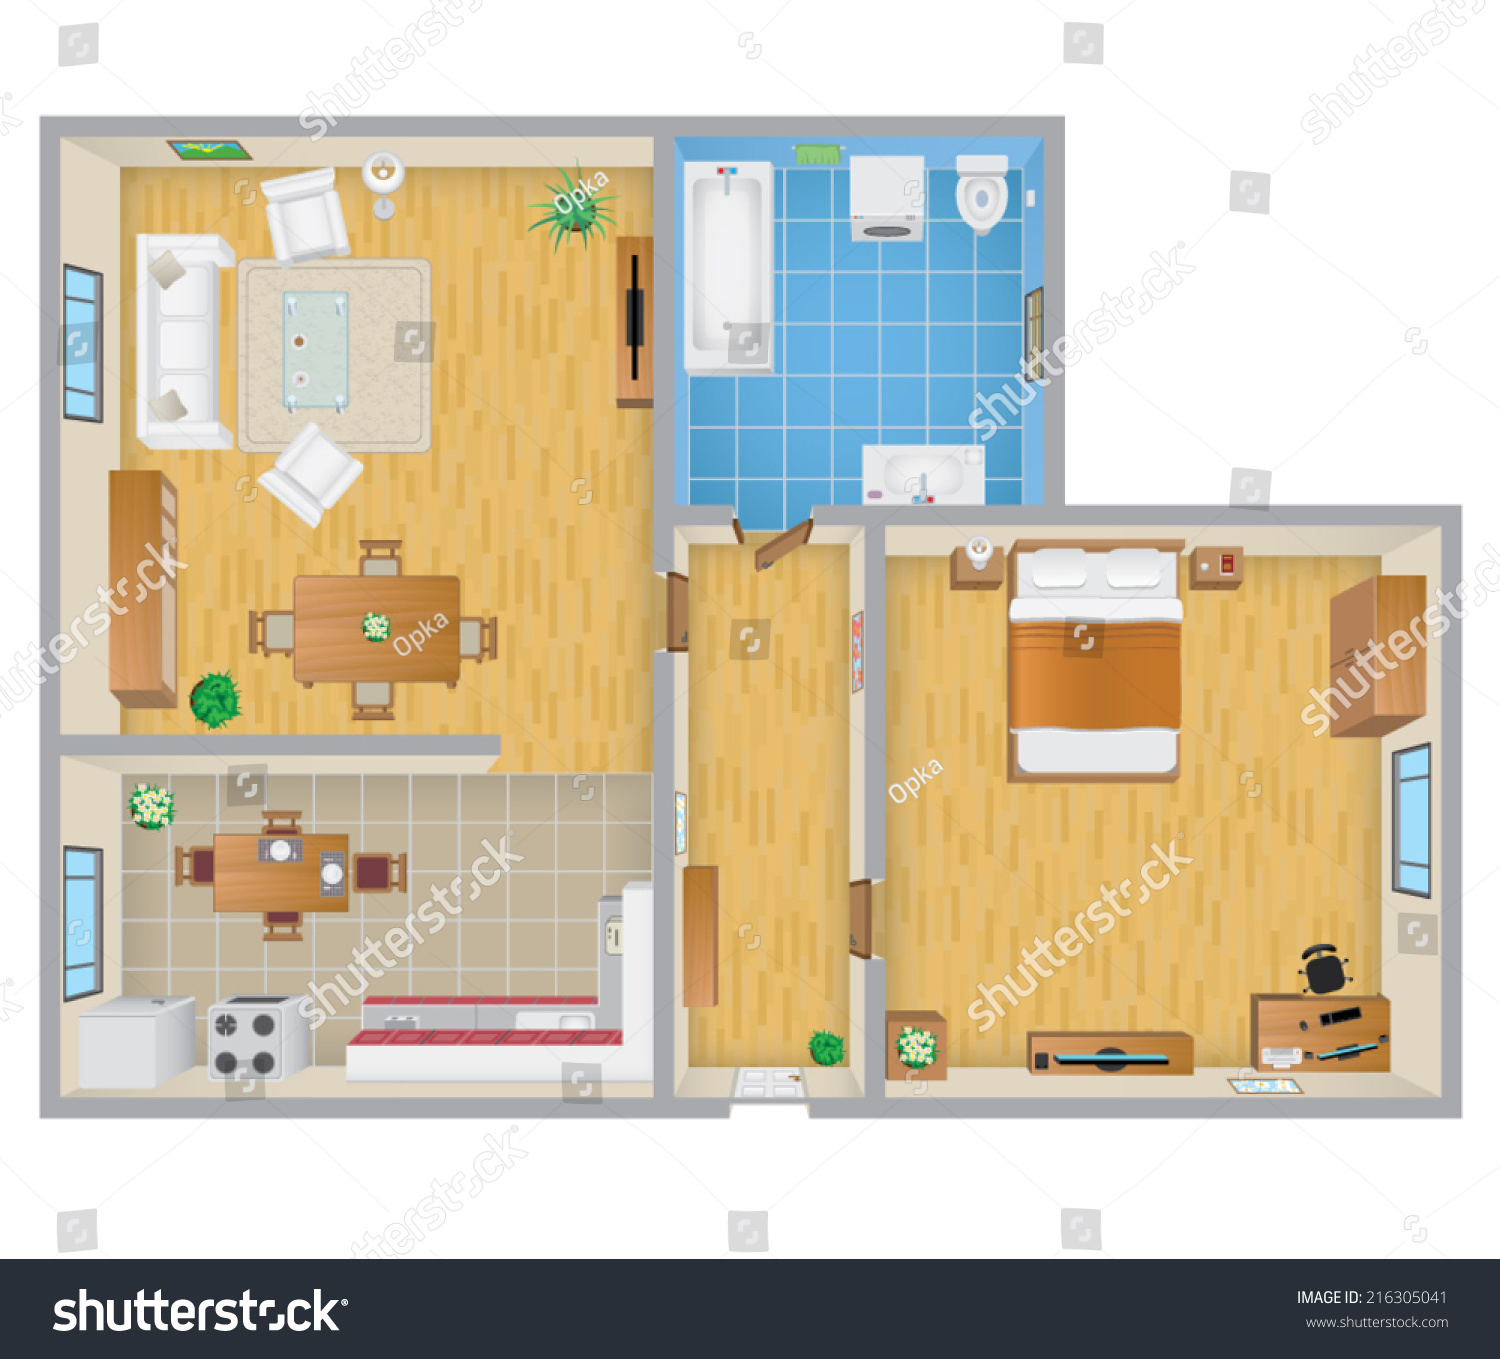 Apartment plan stock vector illustration 216305041 for Apartment stock plans